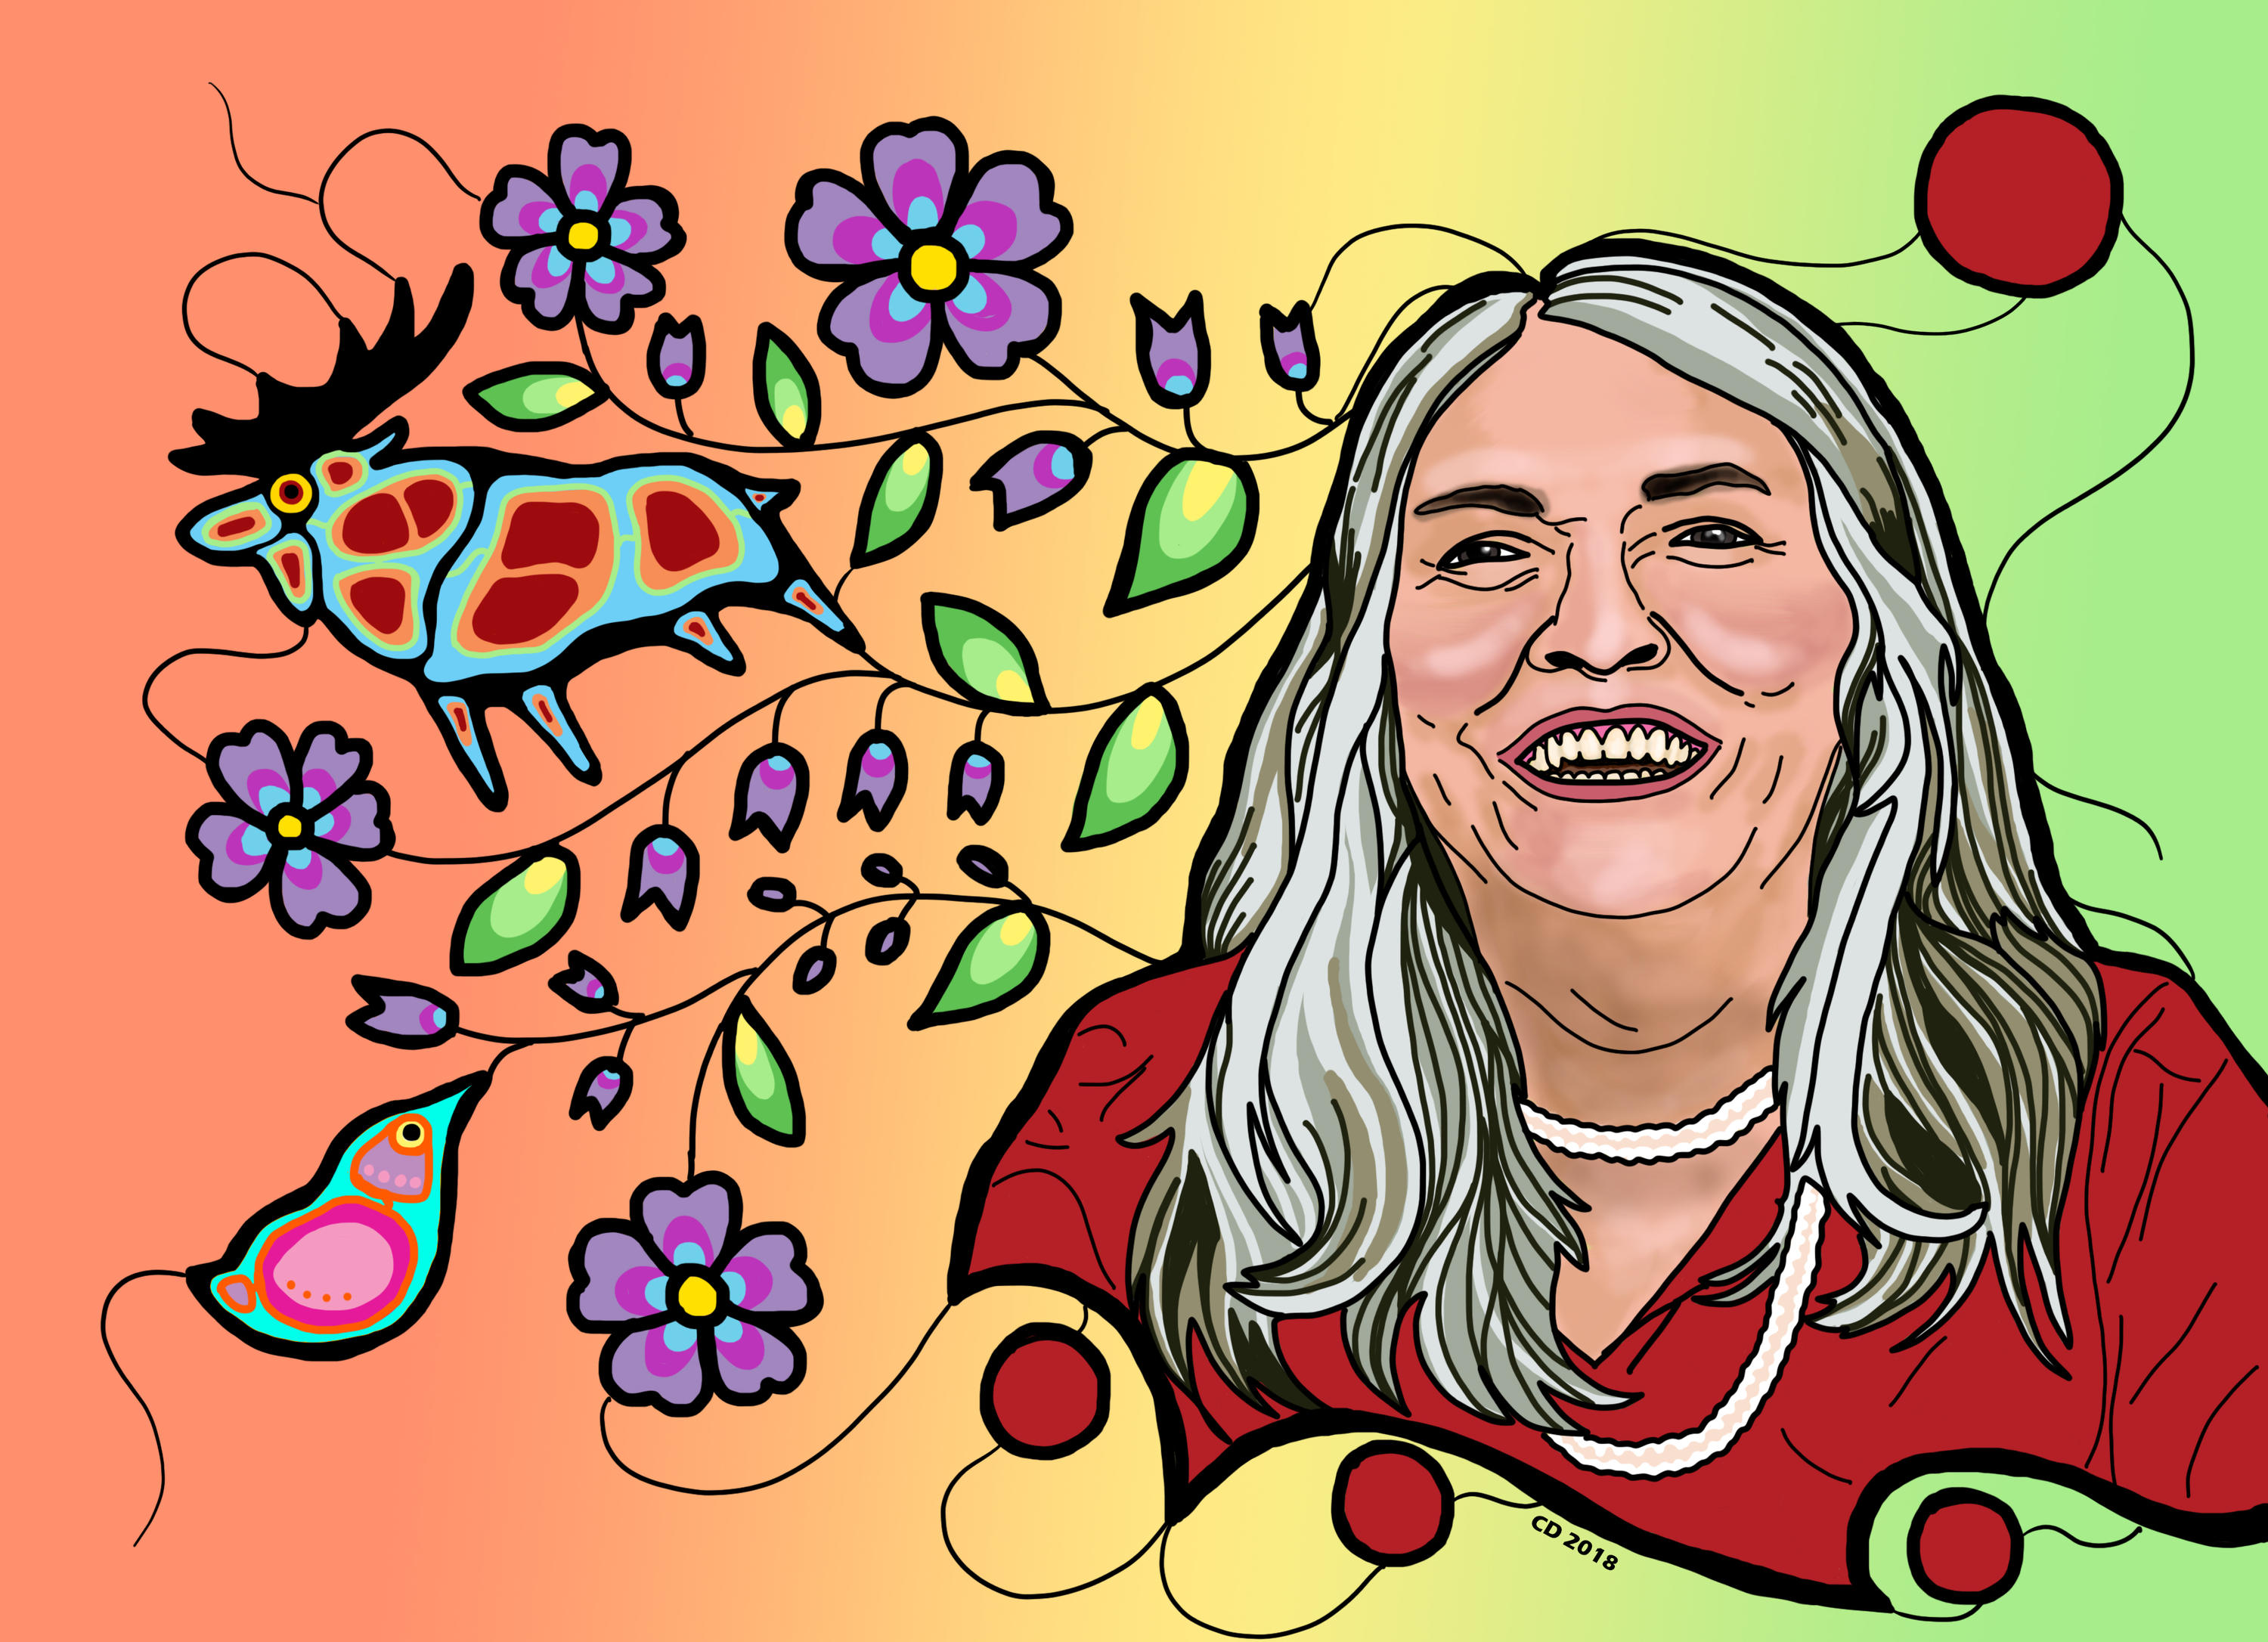 Lee Maracle illustration